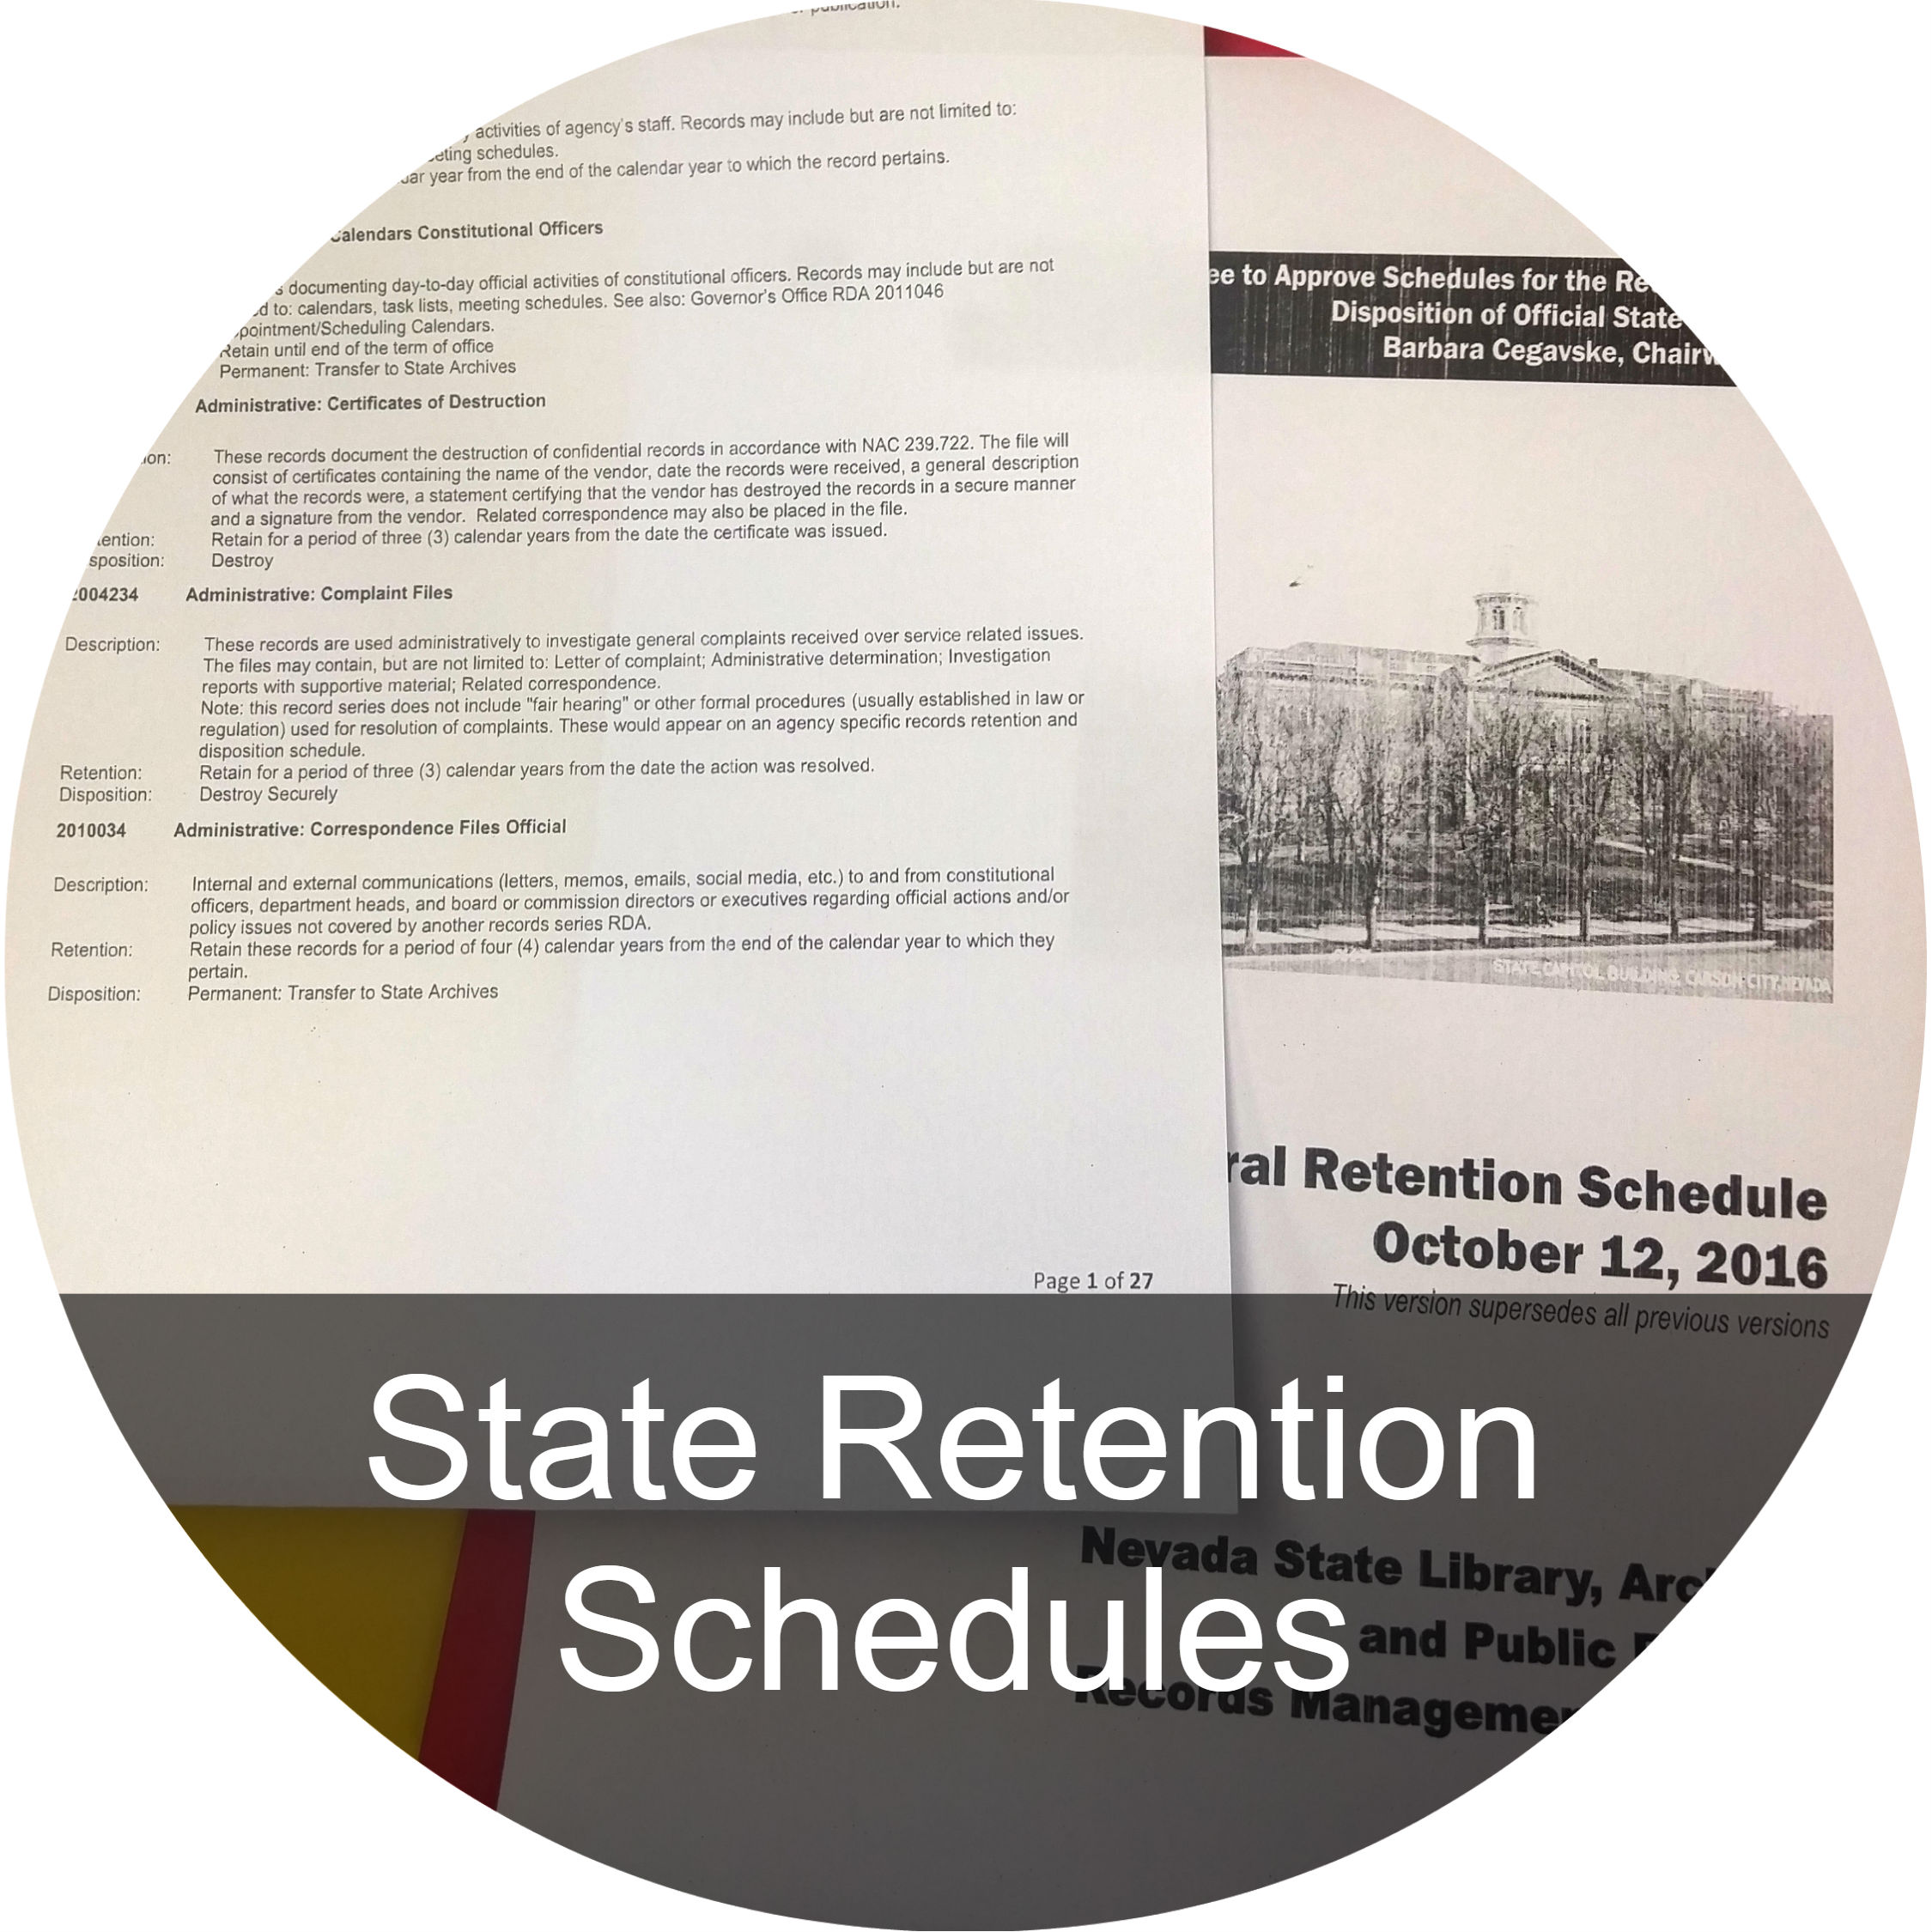 A button link to the State Retention Schedules